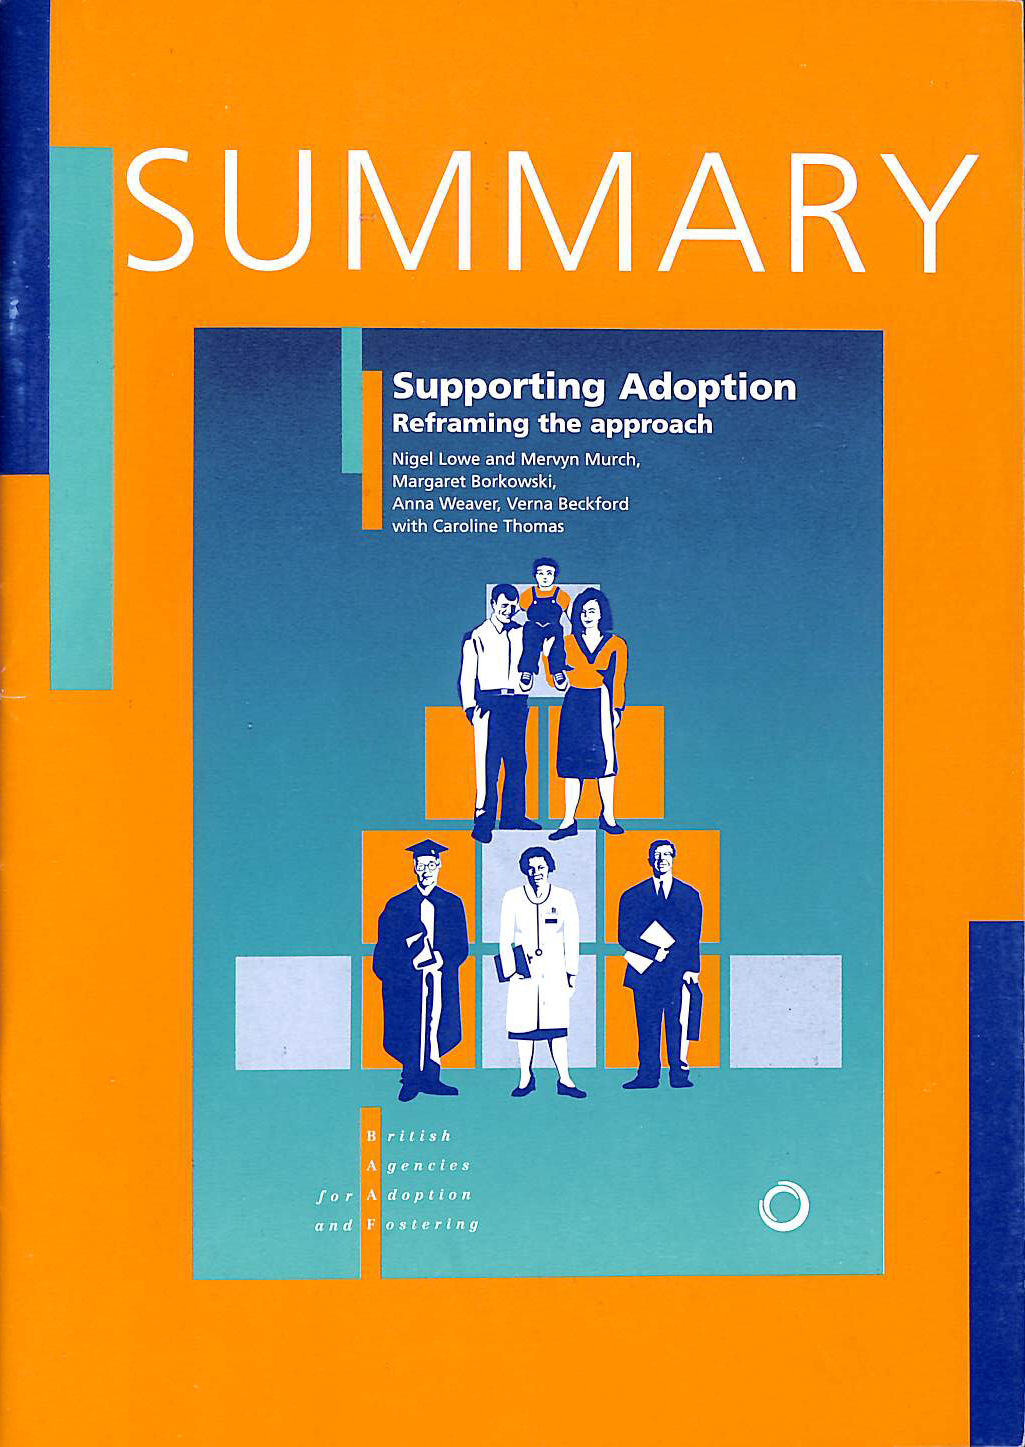 Image for Supporting Adoption: Reframing the Approach; Summary